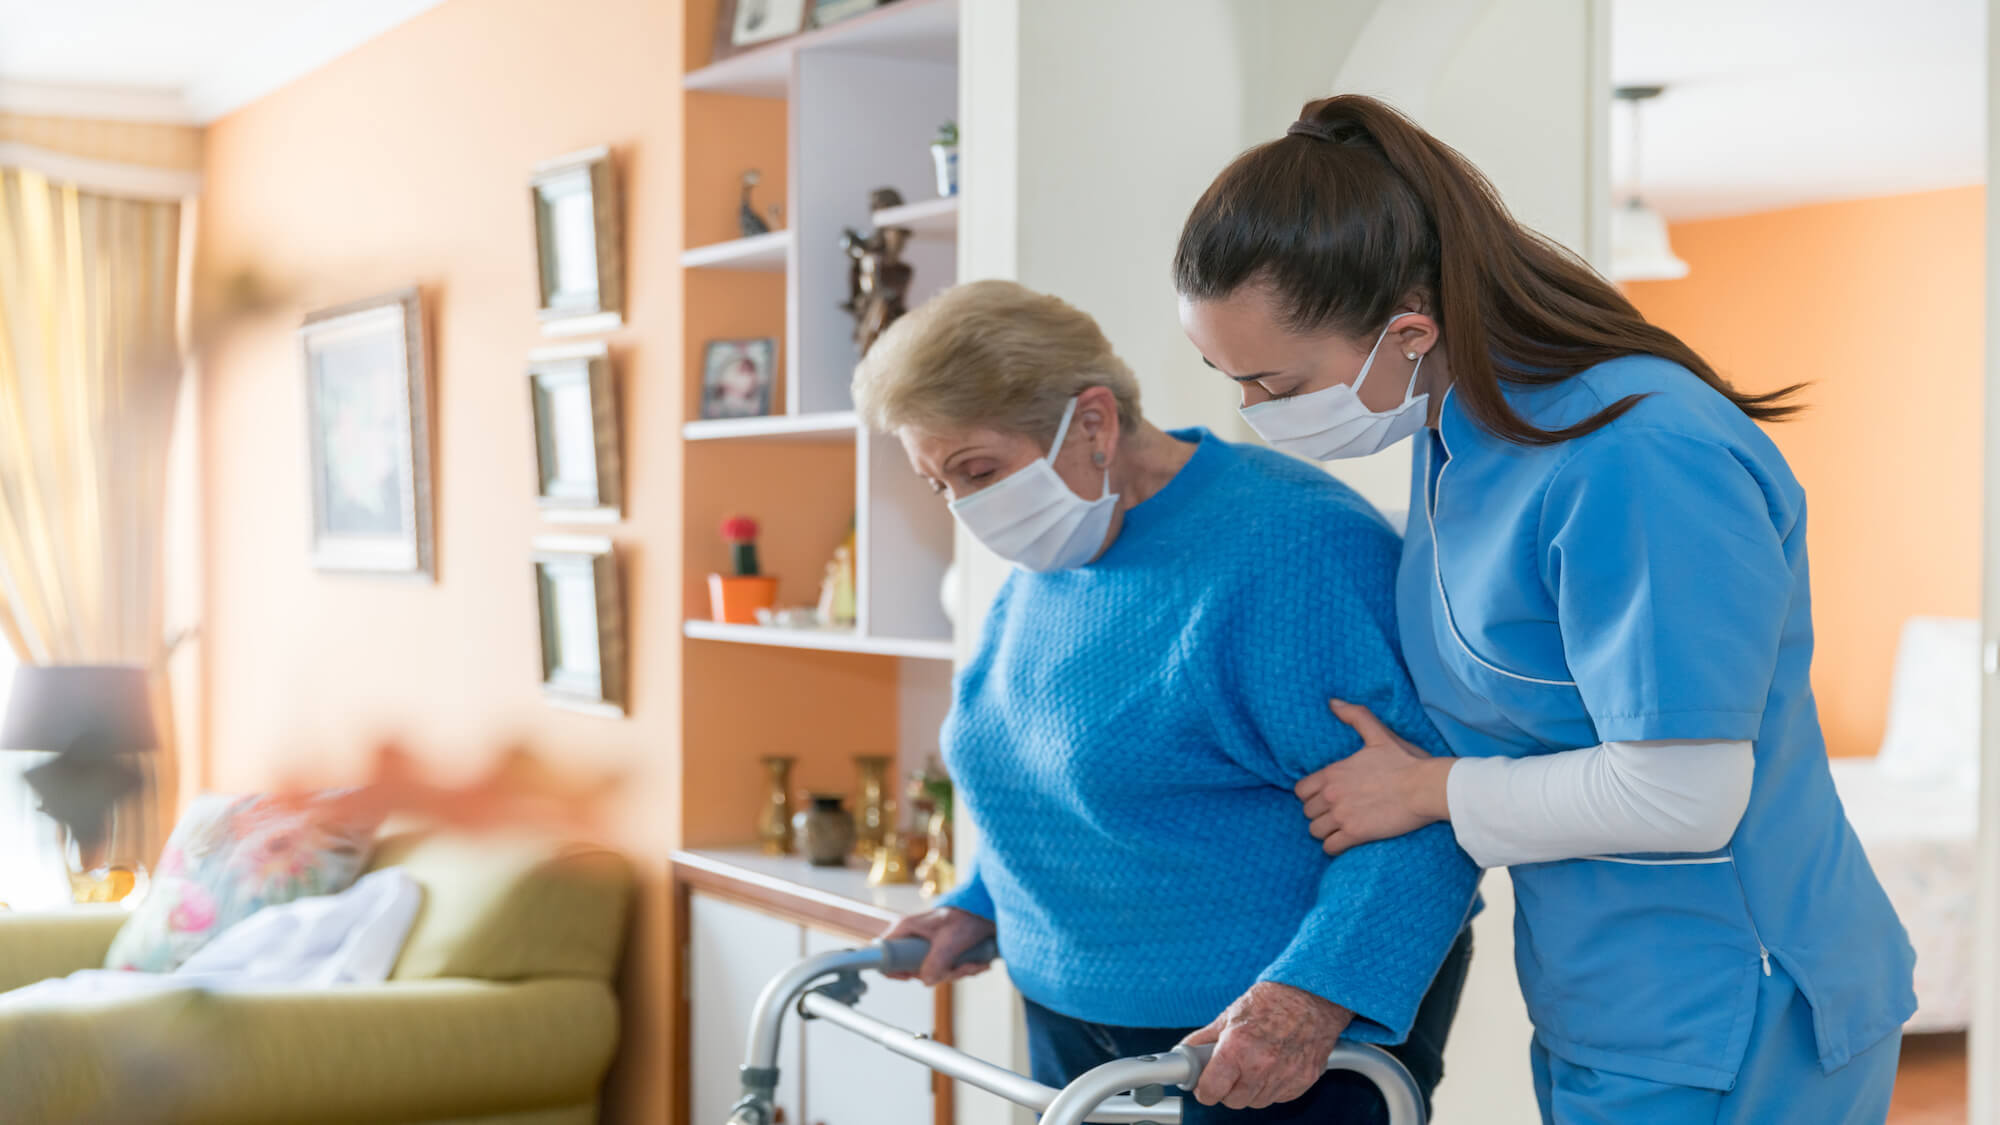 nevada-personal-care-association-rings-alarm-bell-as-home-care-oversight-bill-gets-closer-to-passage-home-care-daily-news